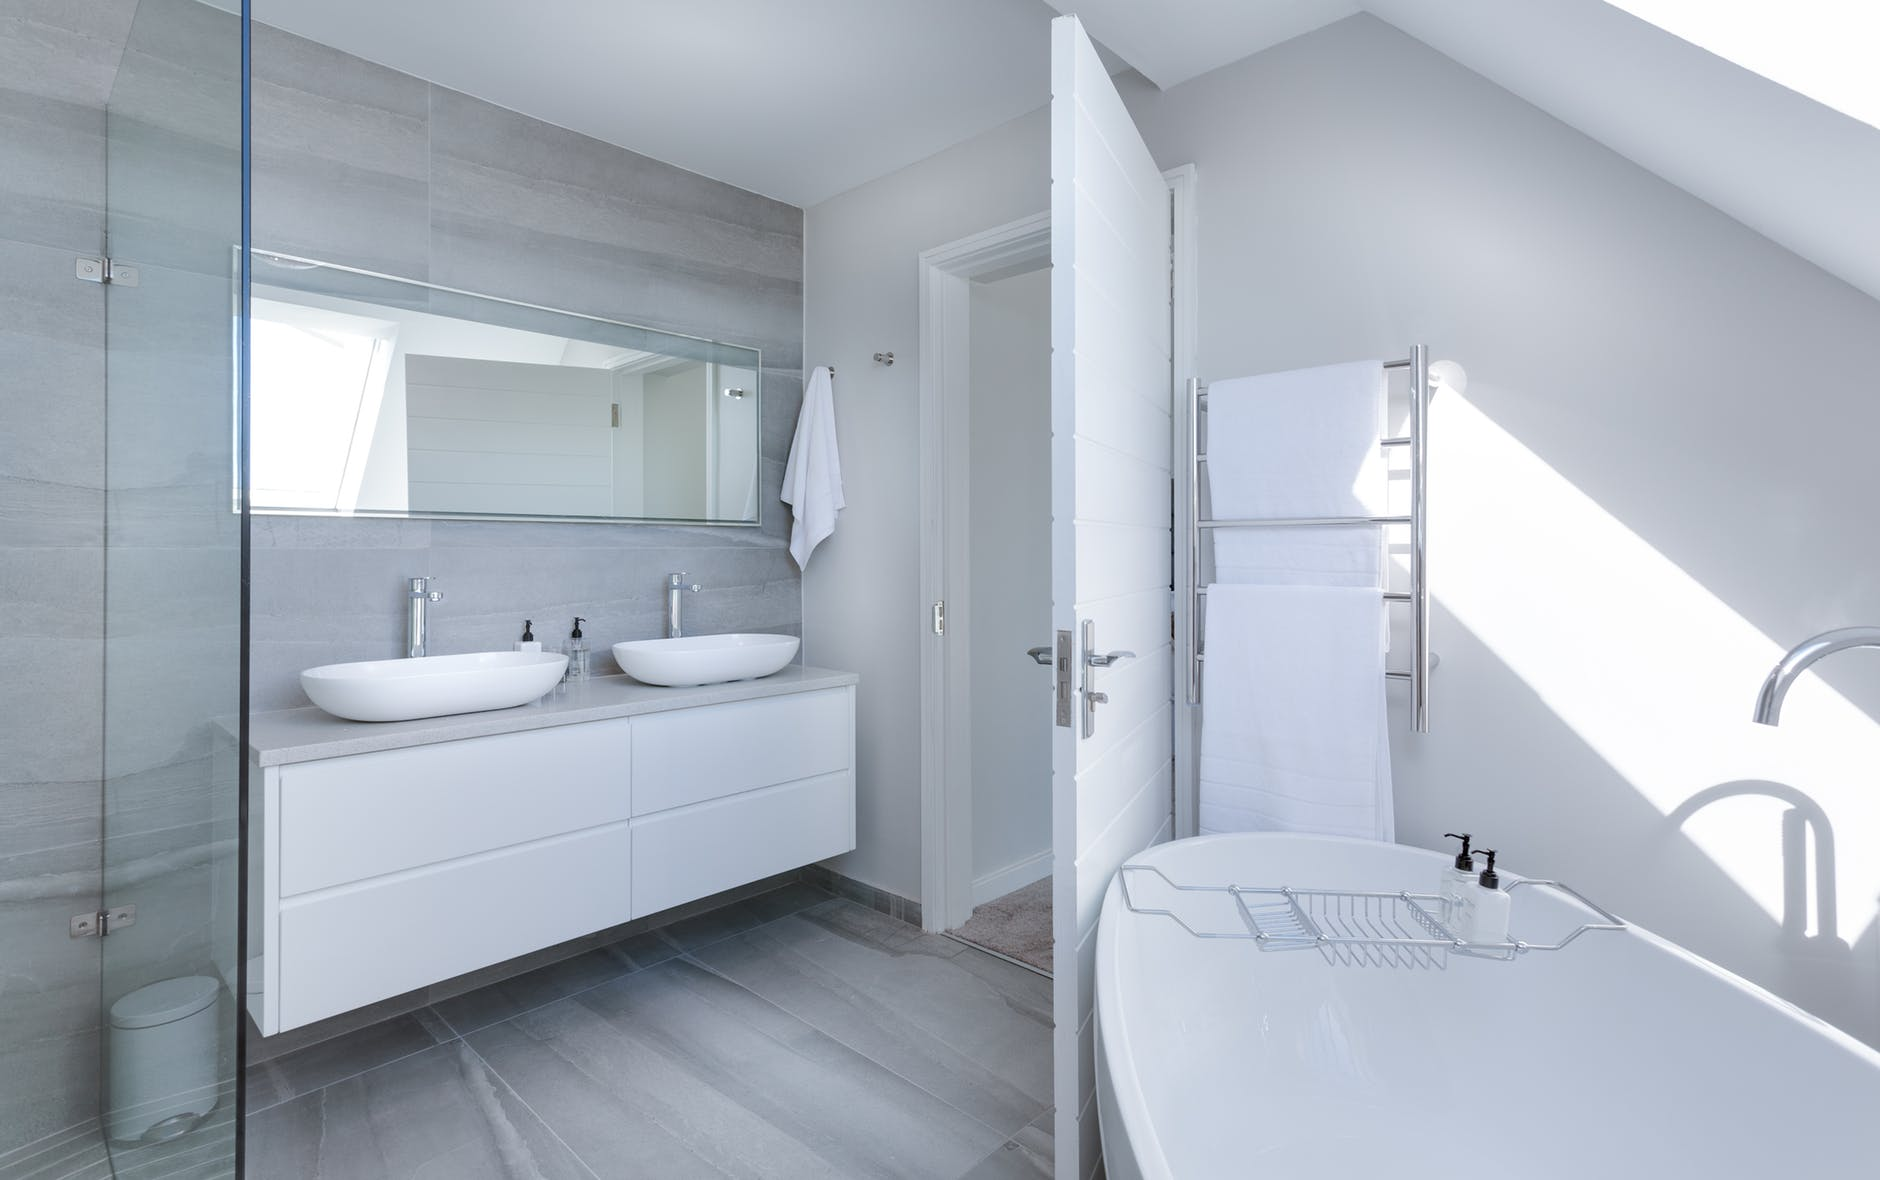 Choosing between Bathtub and Shower? Read this first.